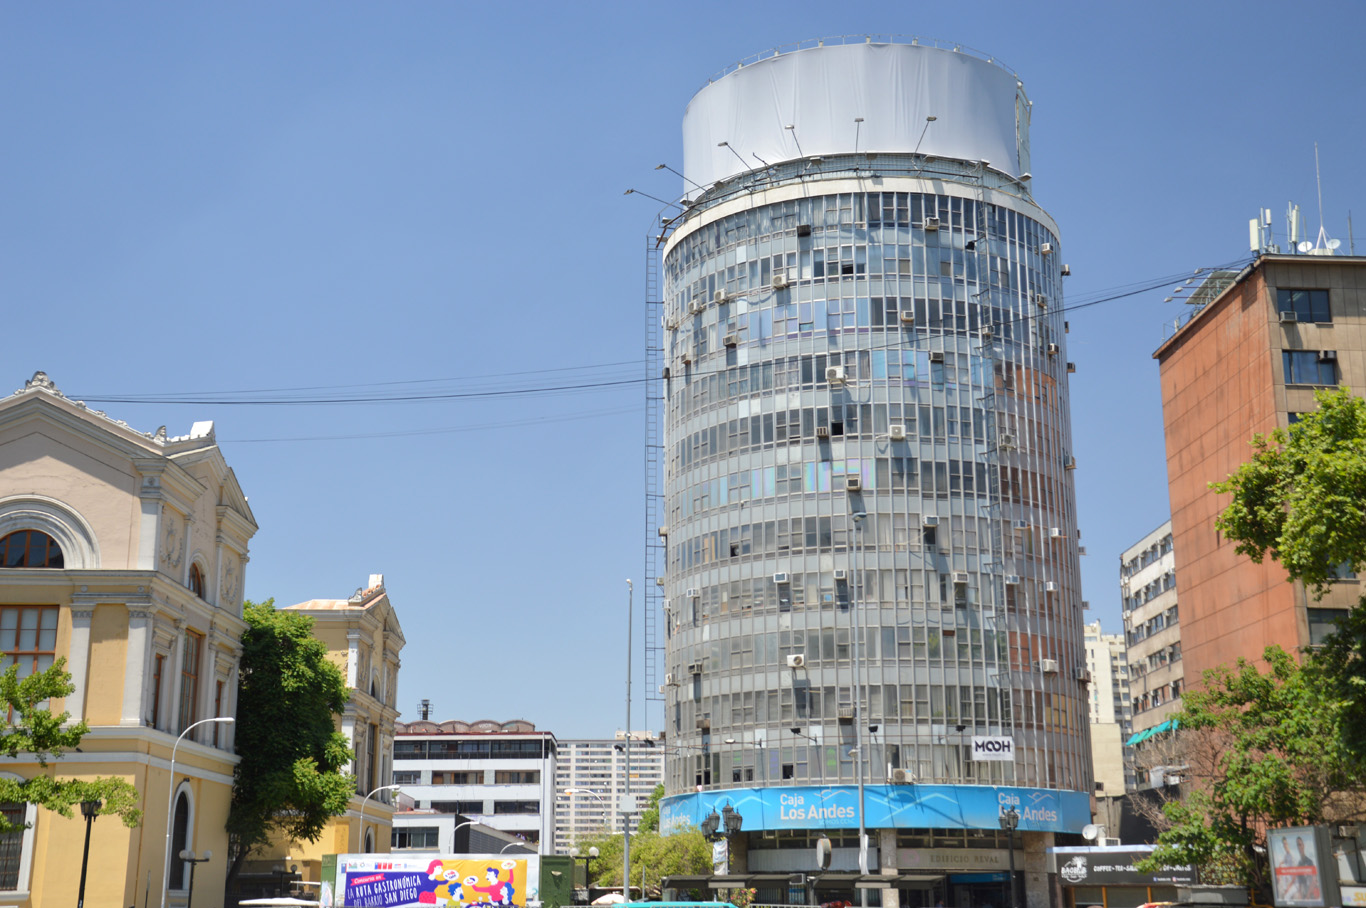 Santiago is full of such mix of architecture